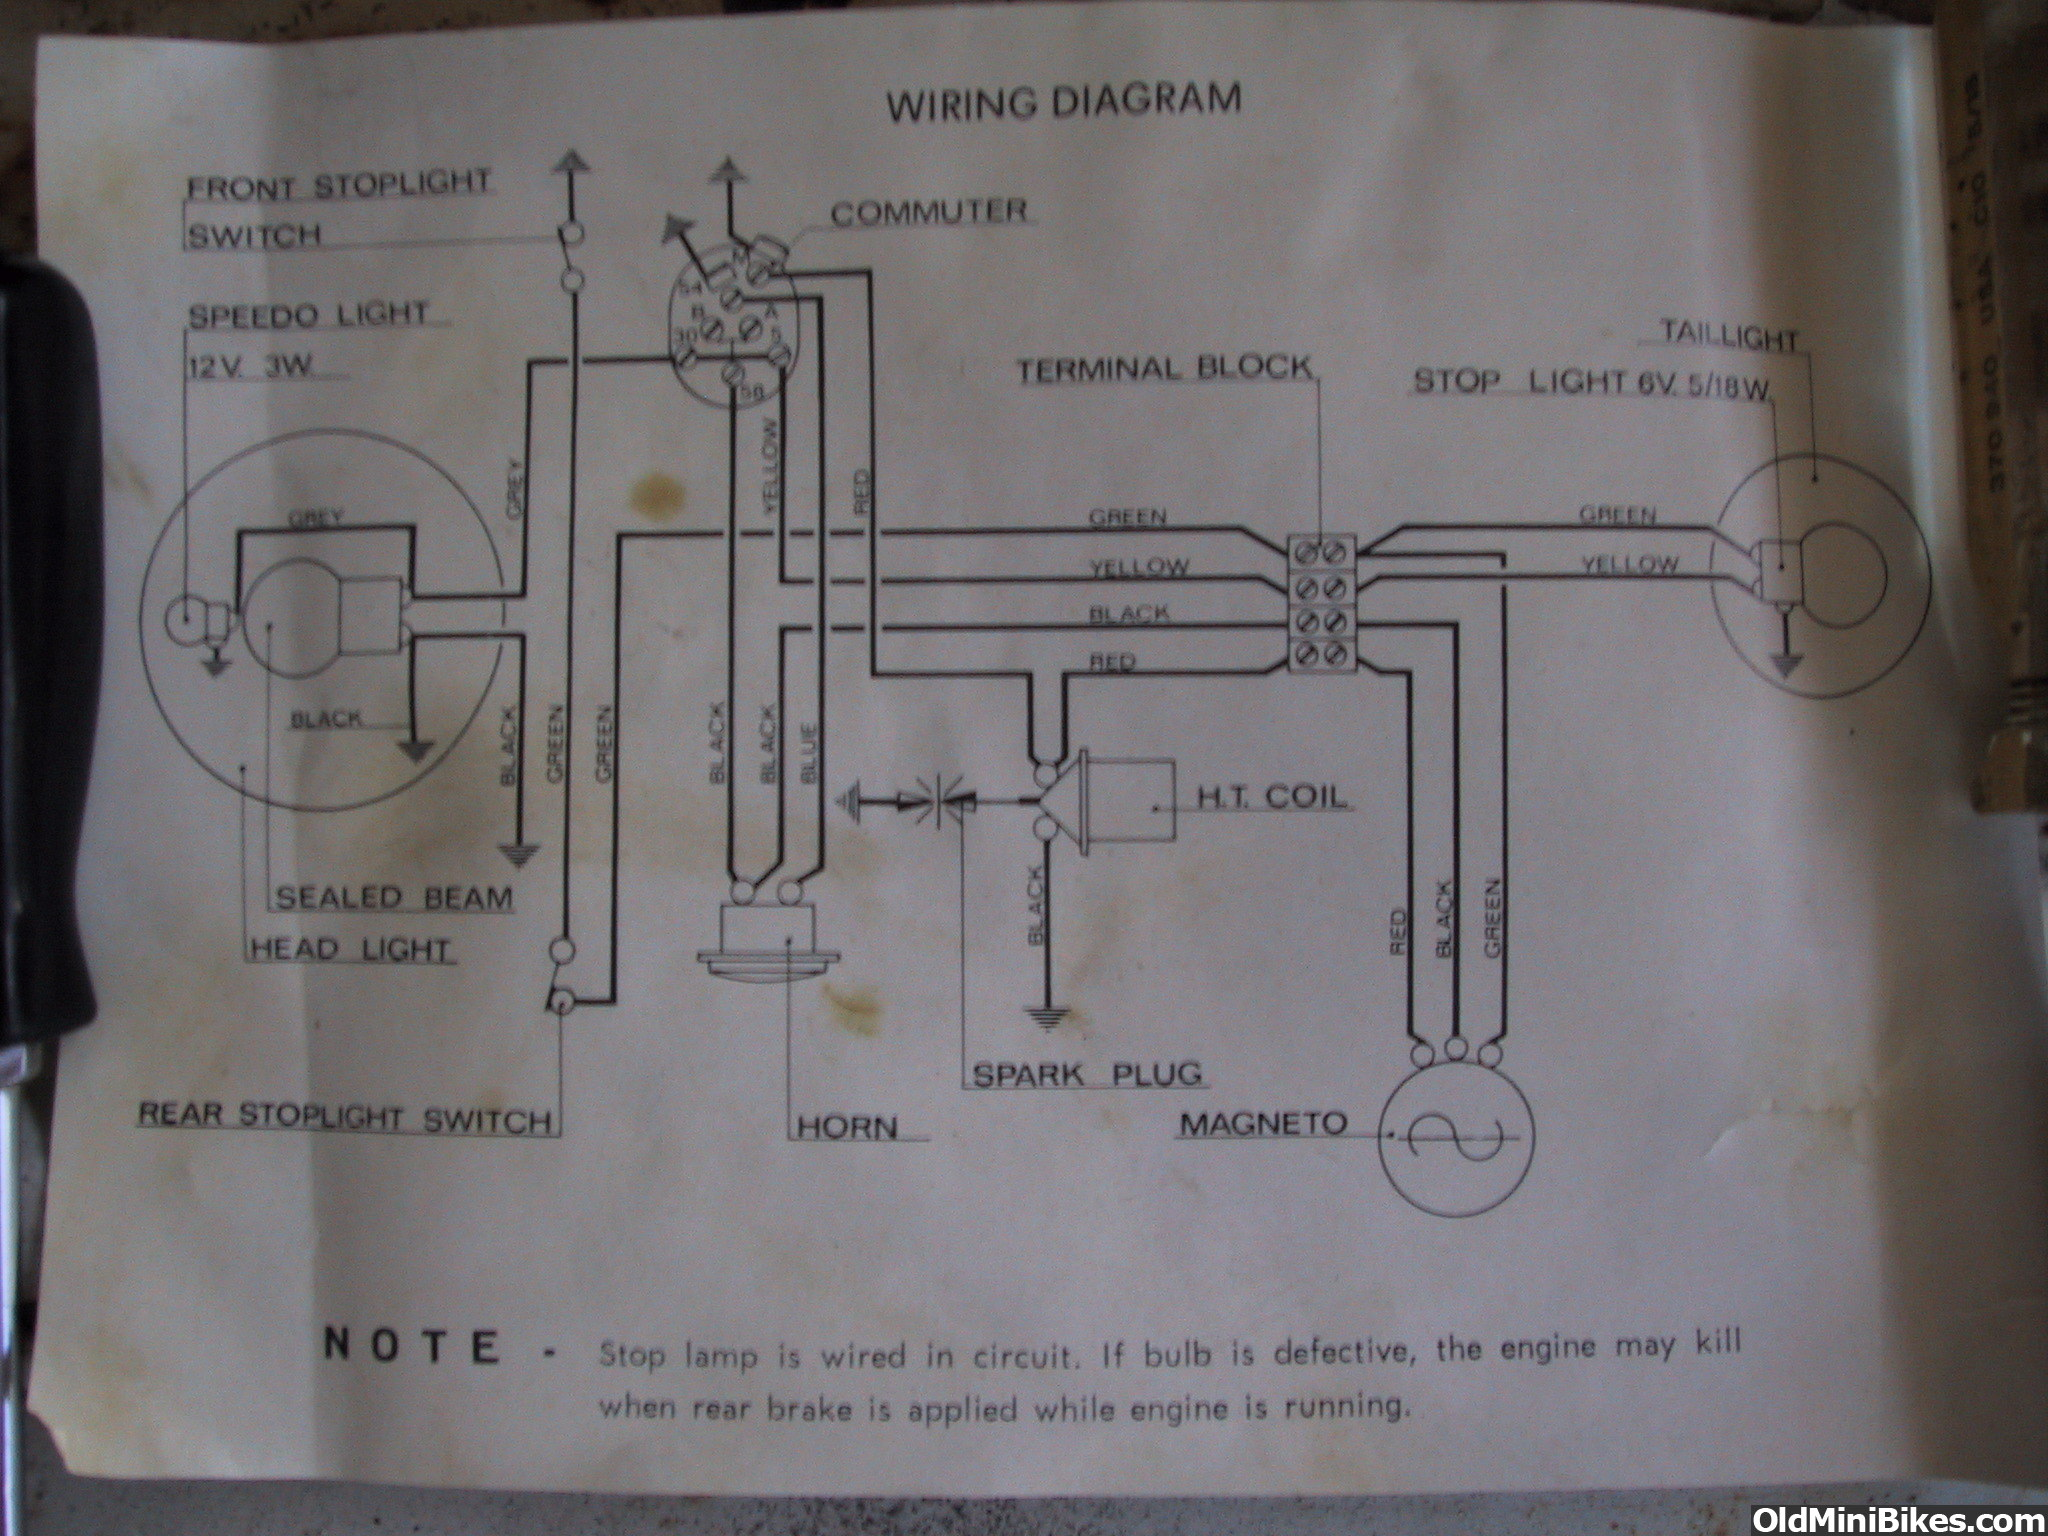 new old benelli dynamo this is the wiring schematic thats found in the owners manual for my hurricanes and also came an nos headlight and wiring kit for the benelli mini